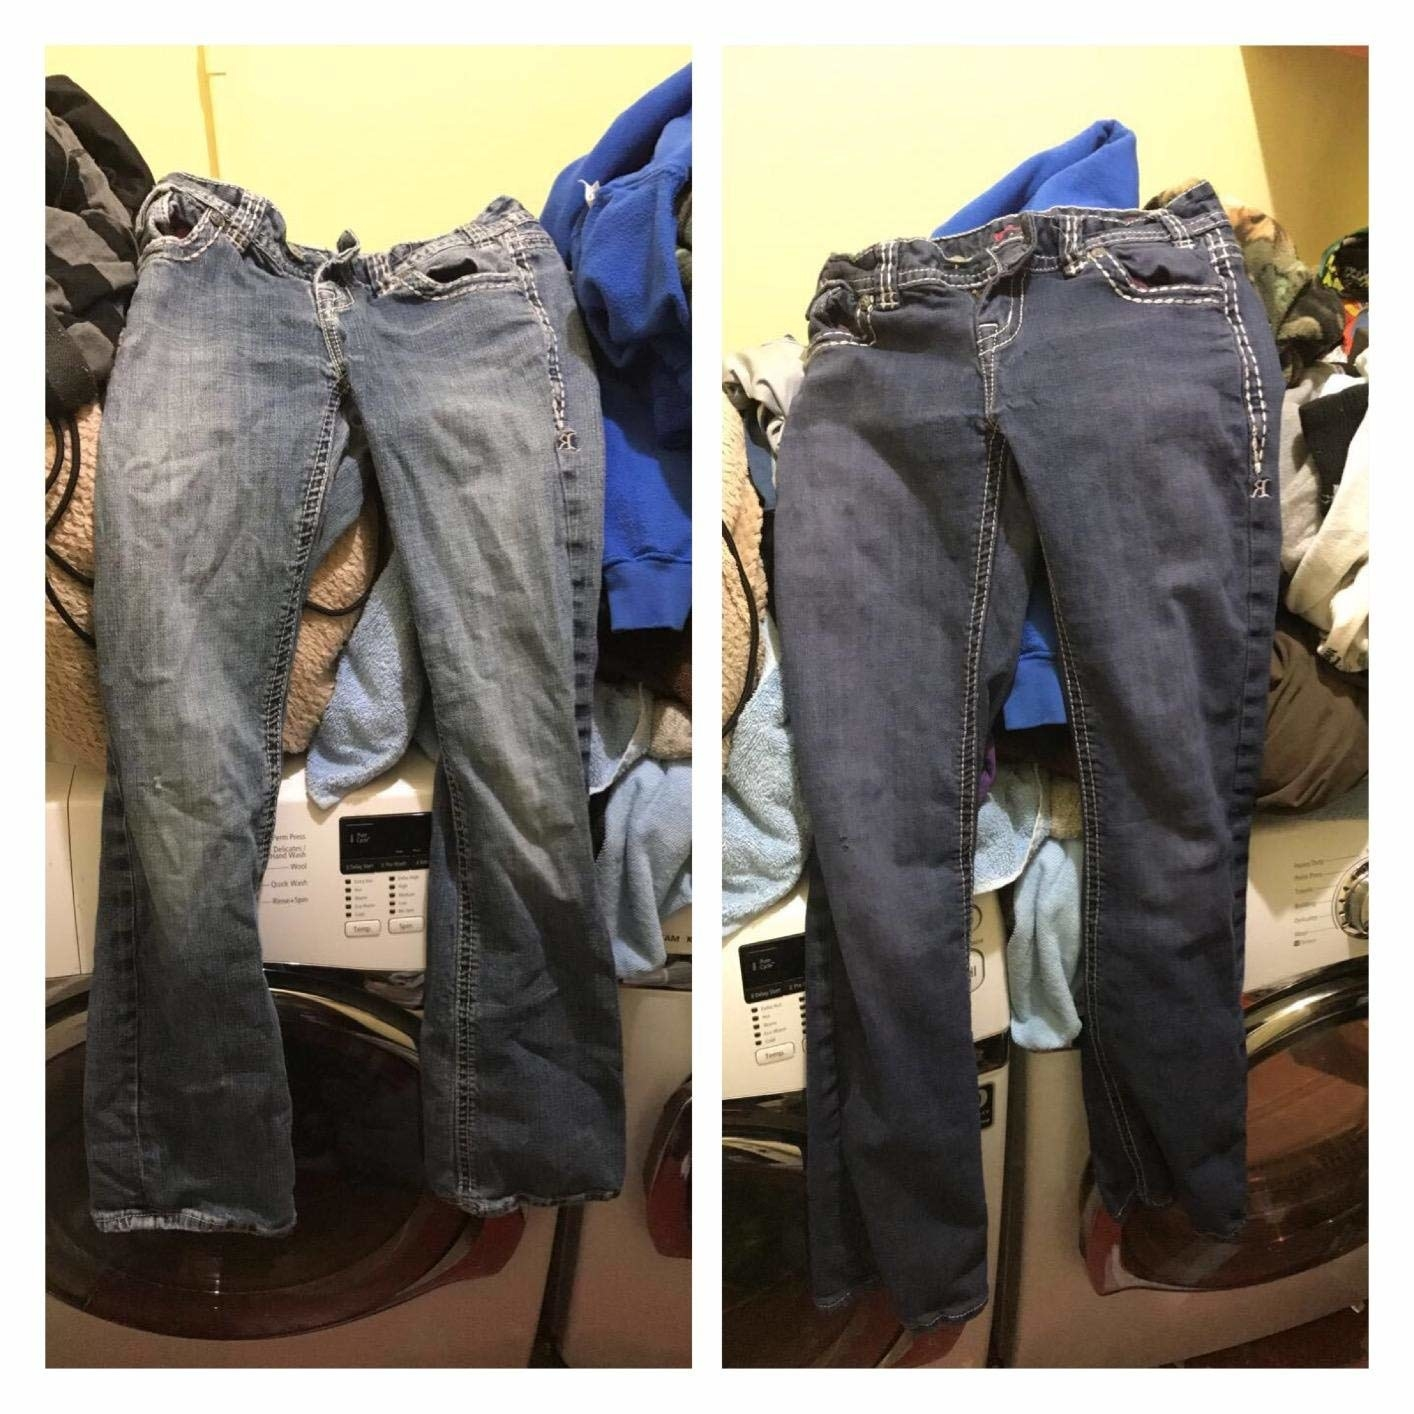 Reviewer before and after photo of jeans using Rit dye